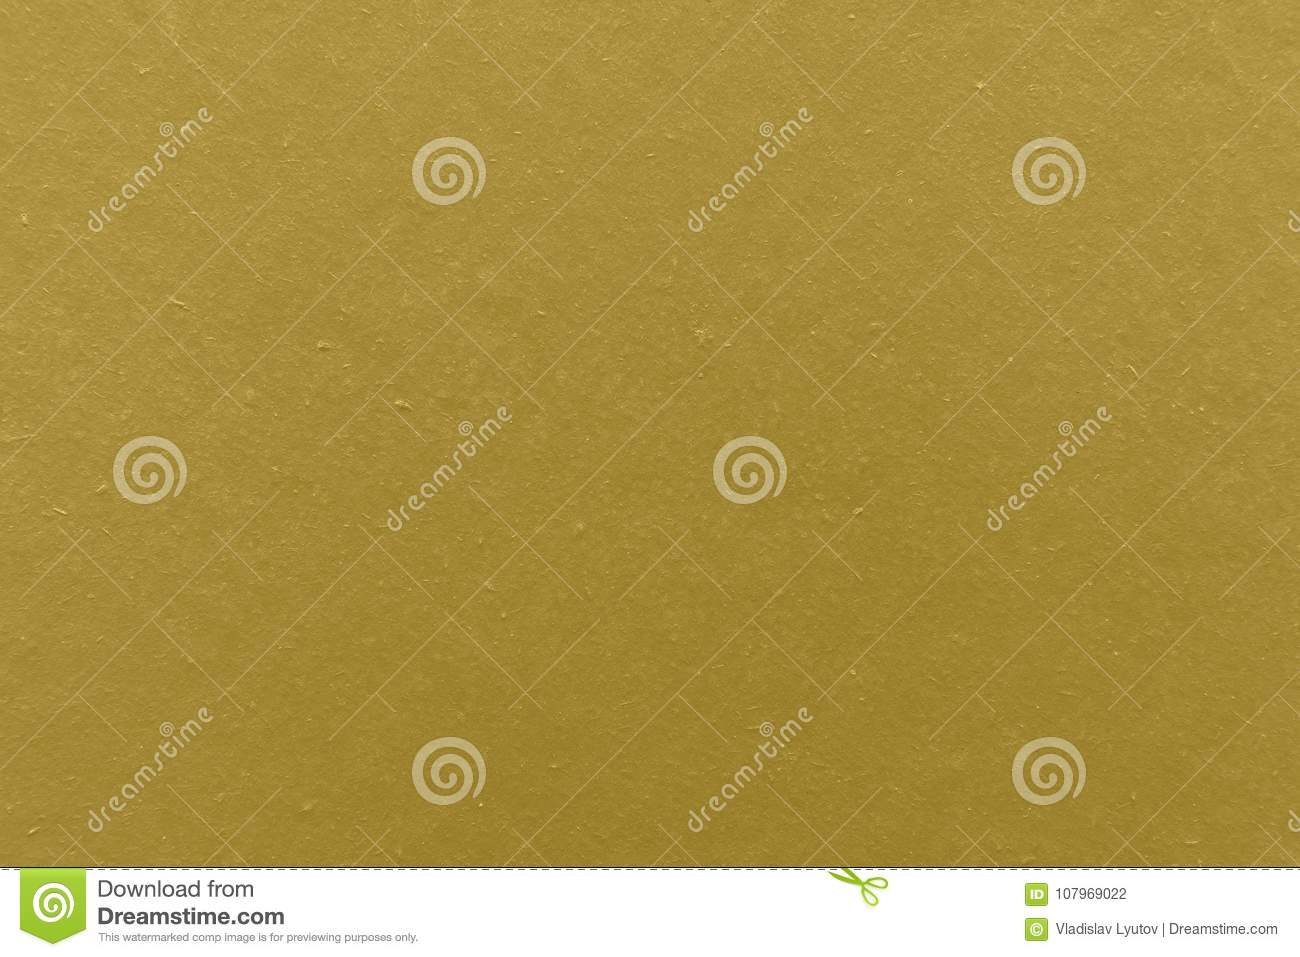 Wall Painted In Yellow Color Texture Background. Stock Photo - Image ...